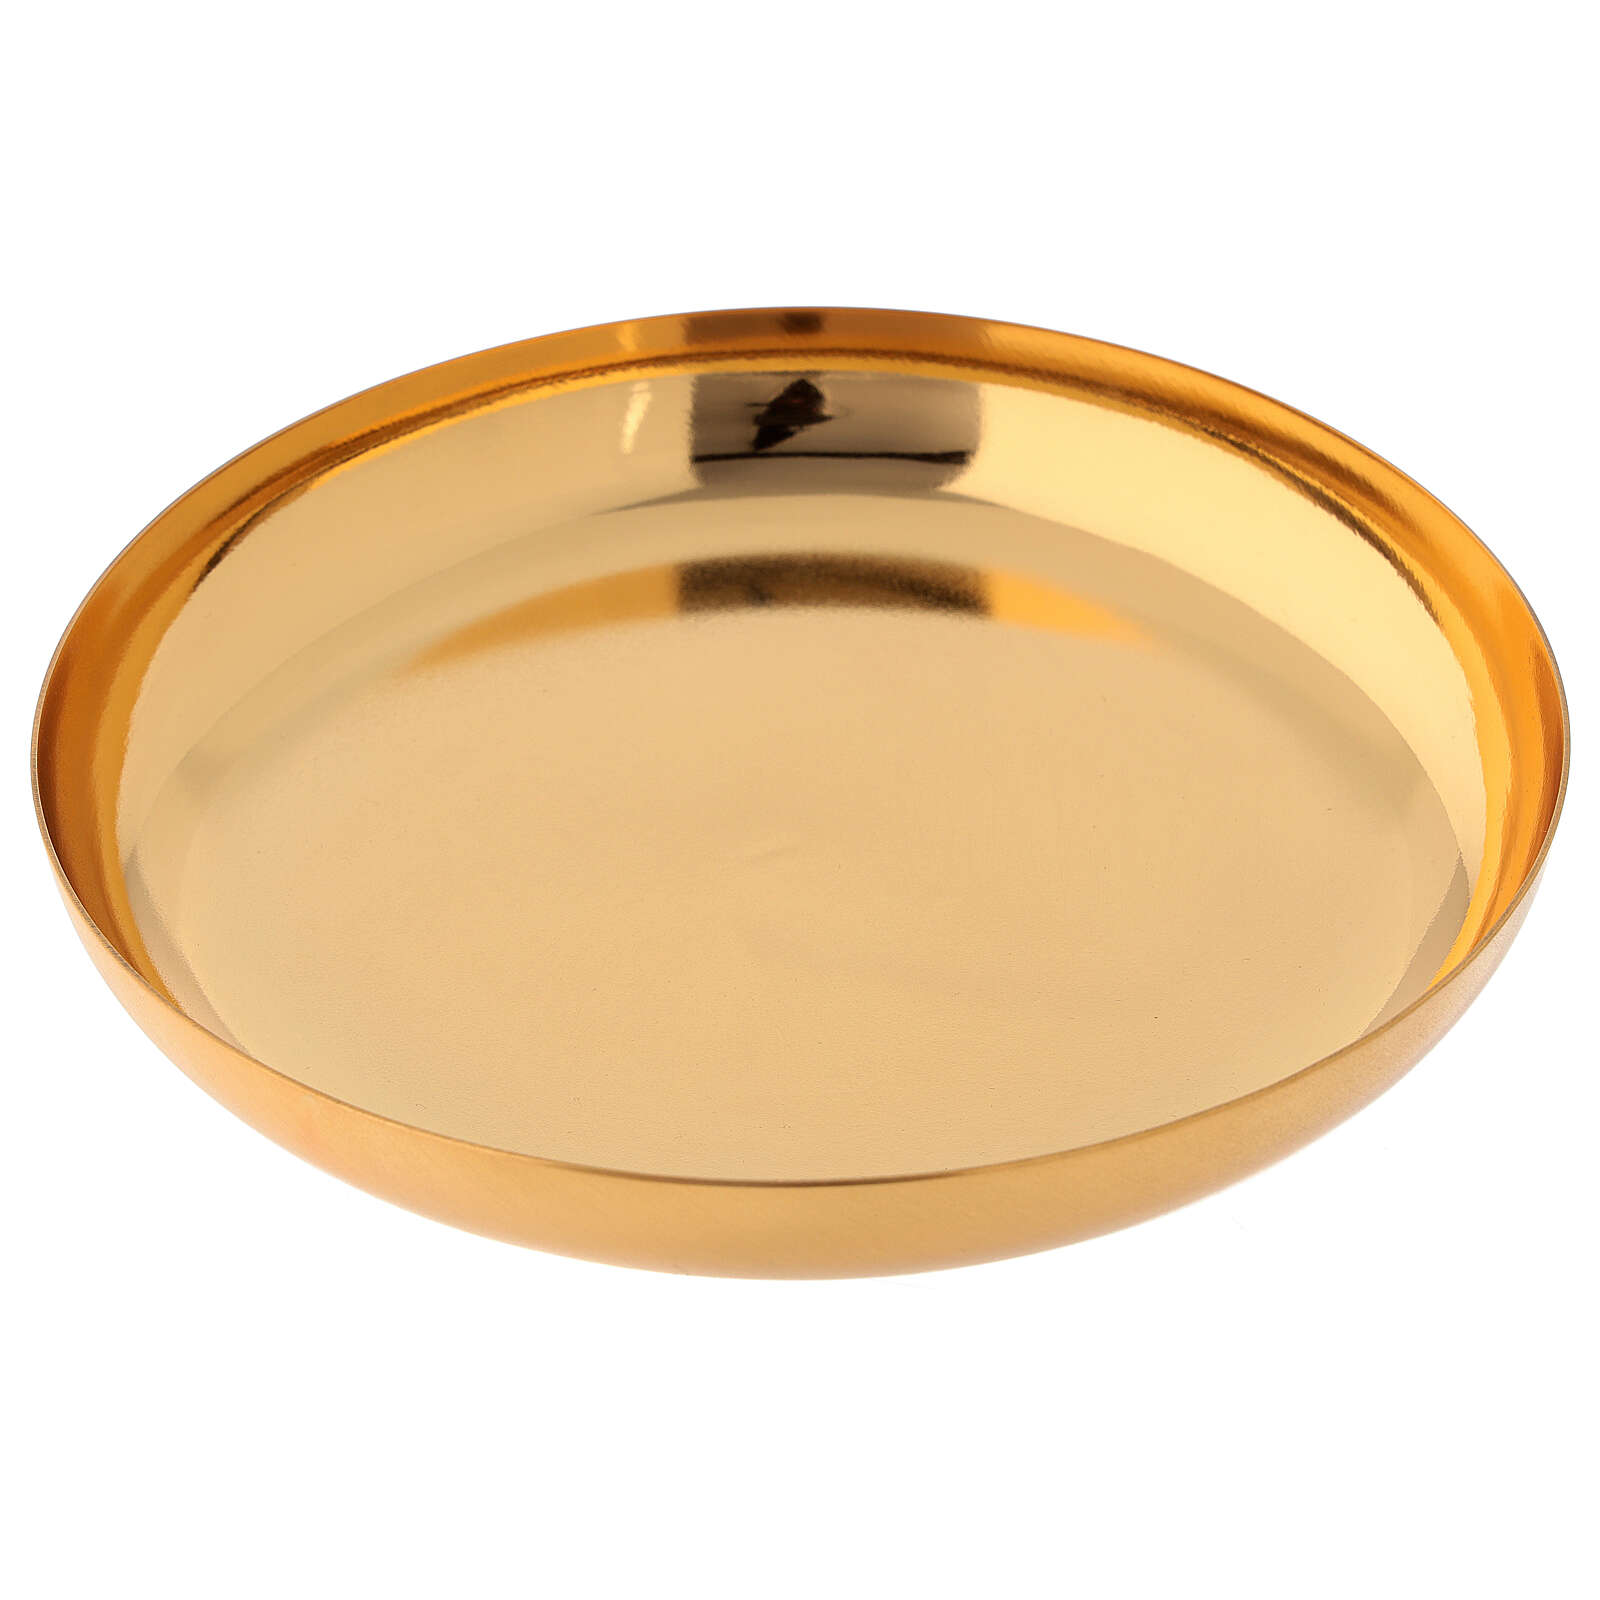 Paten in golden brass, polished, high sides 16 cm 4